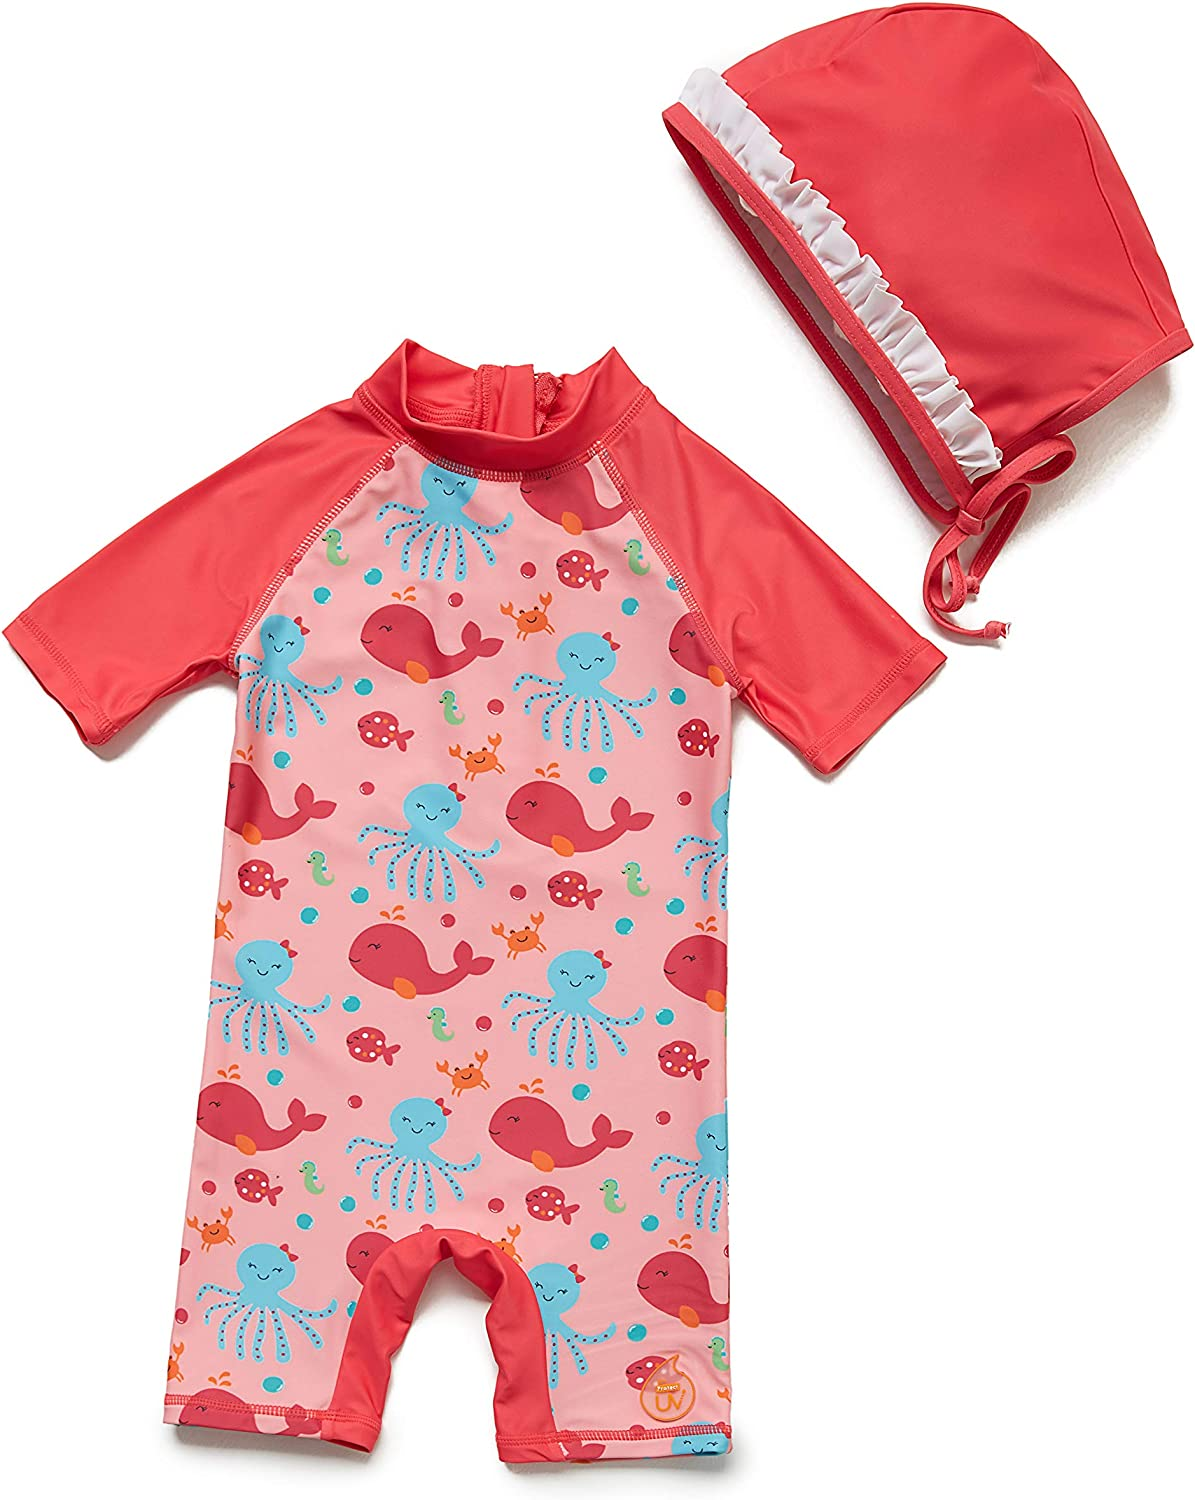 Sun Protection Sunsuit BONVERANO One Piece Swimsuit for Baby Girls UPF50